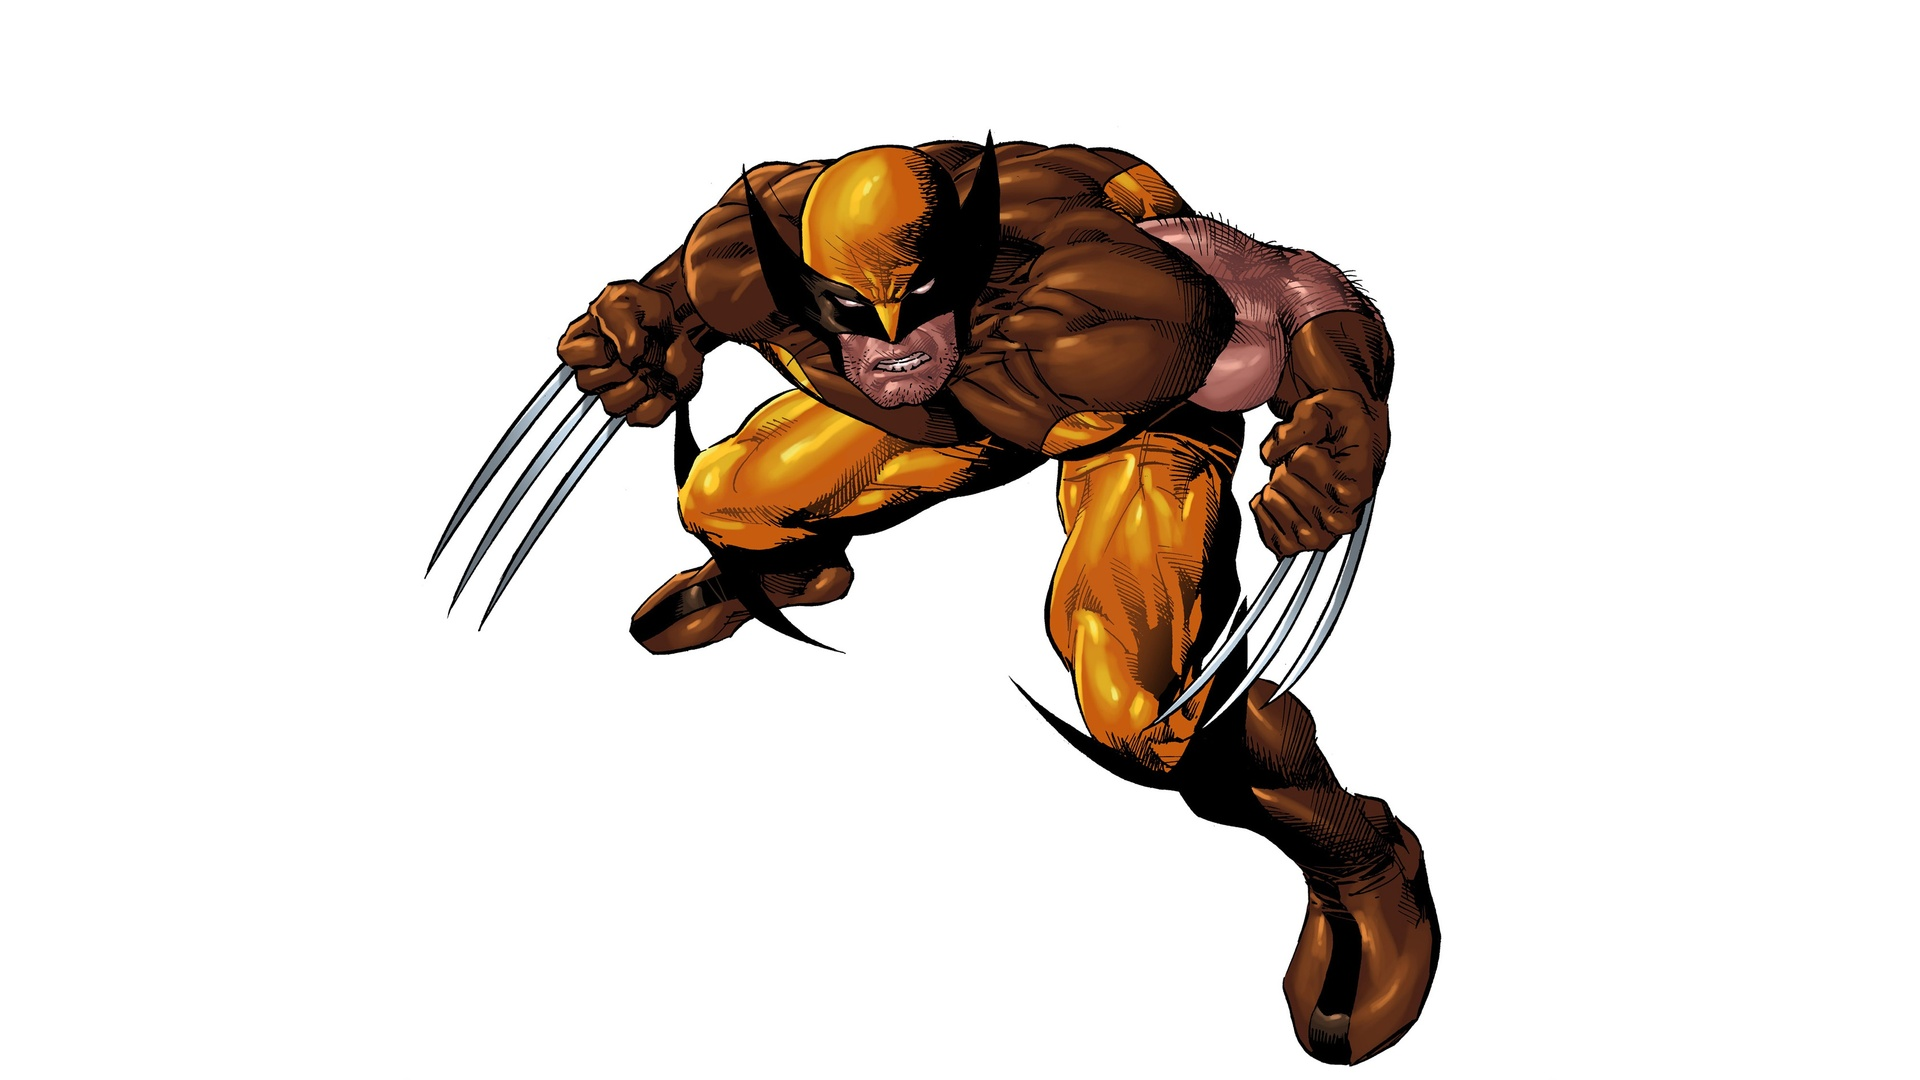 1920x1080 X Men Marvel Comics Wolverine Laptop Full Hd 1080p Hd 4k